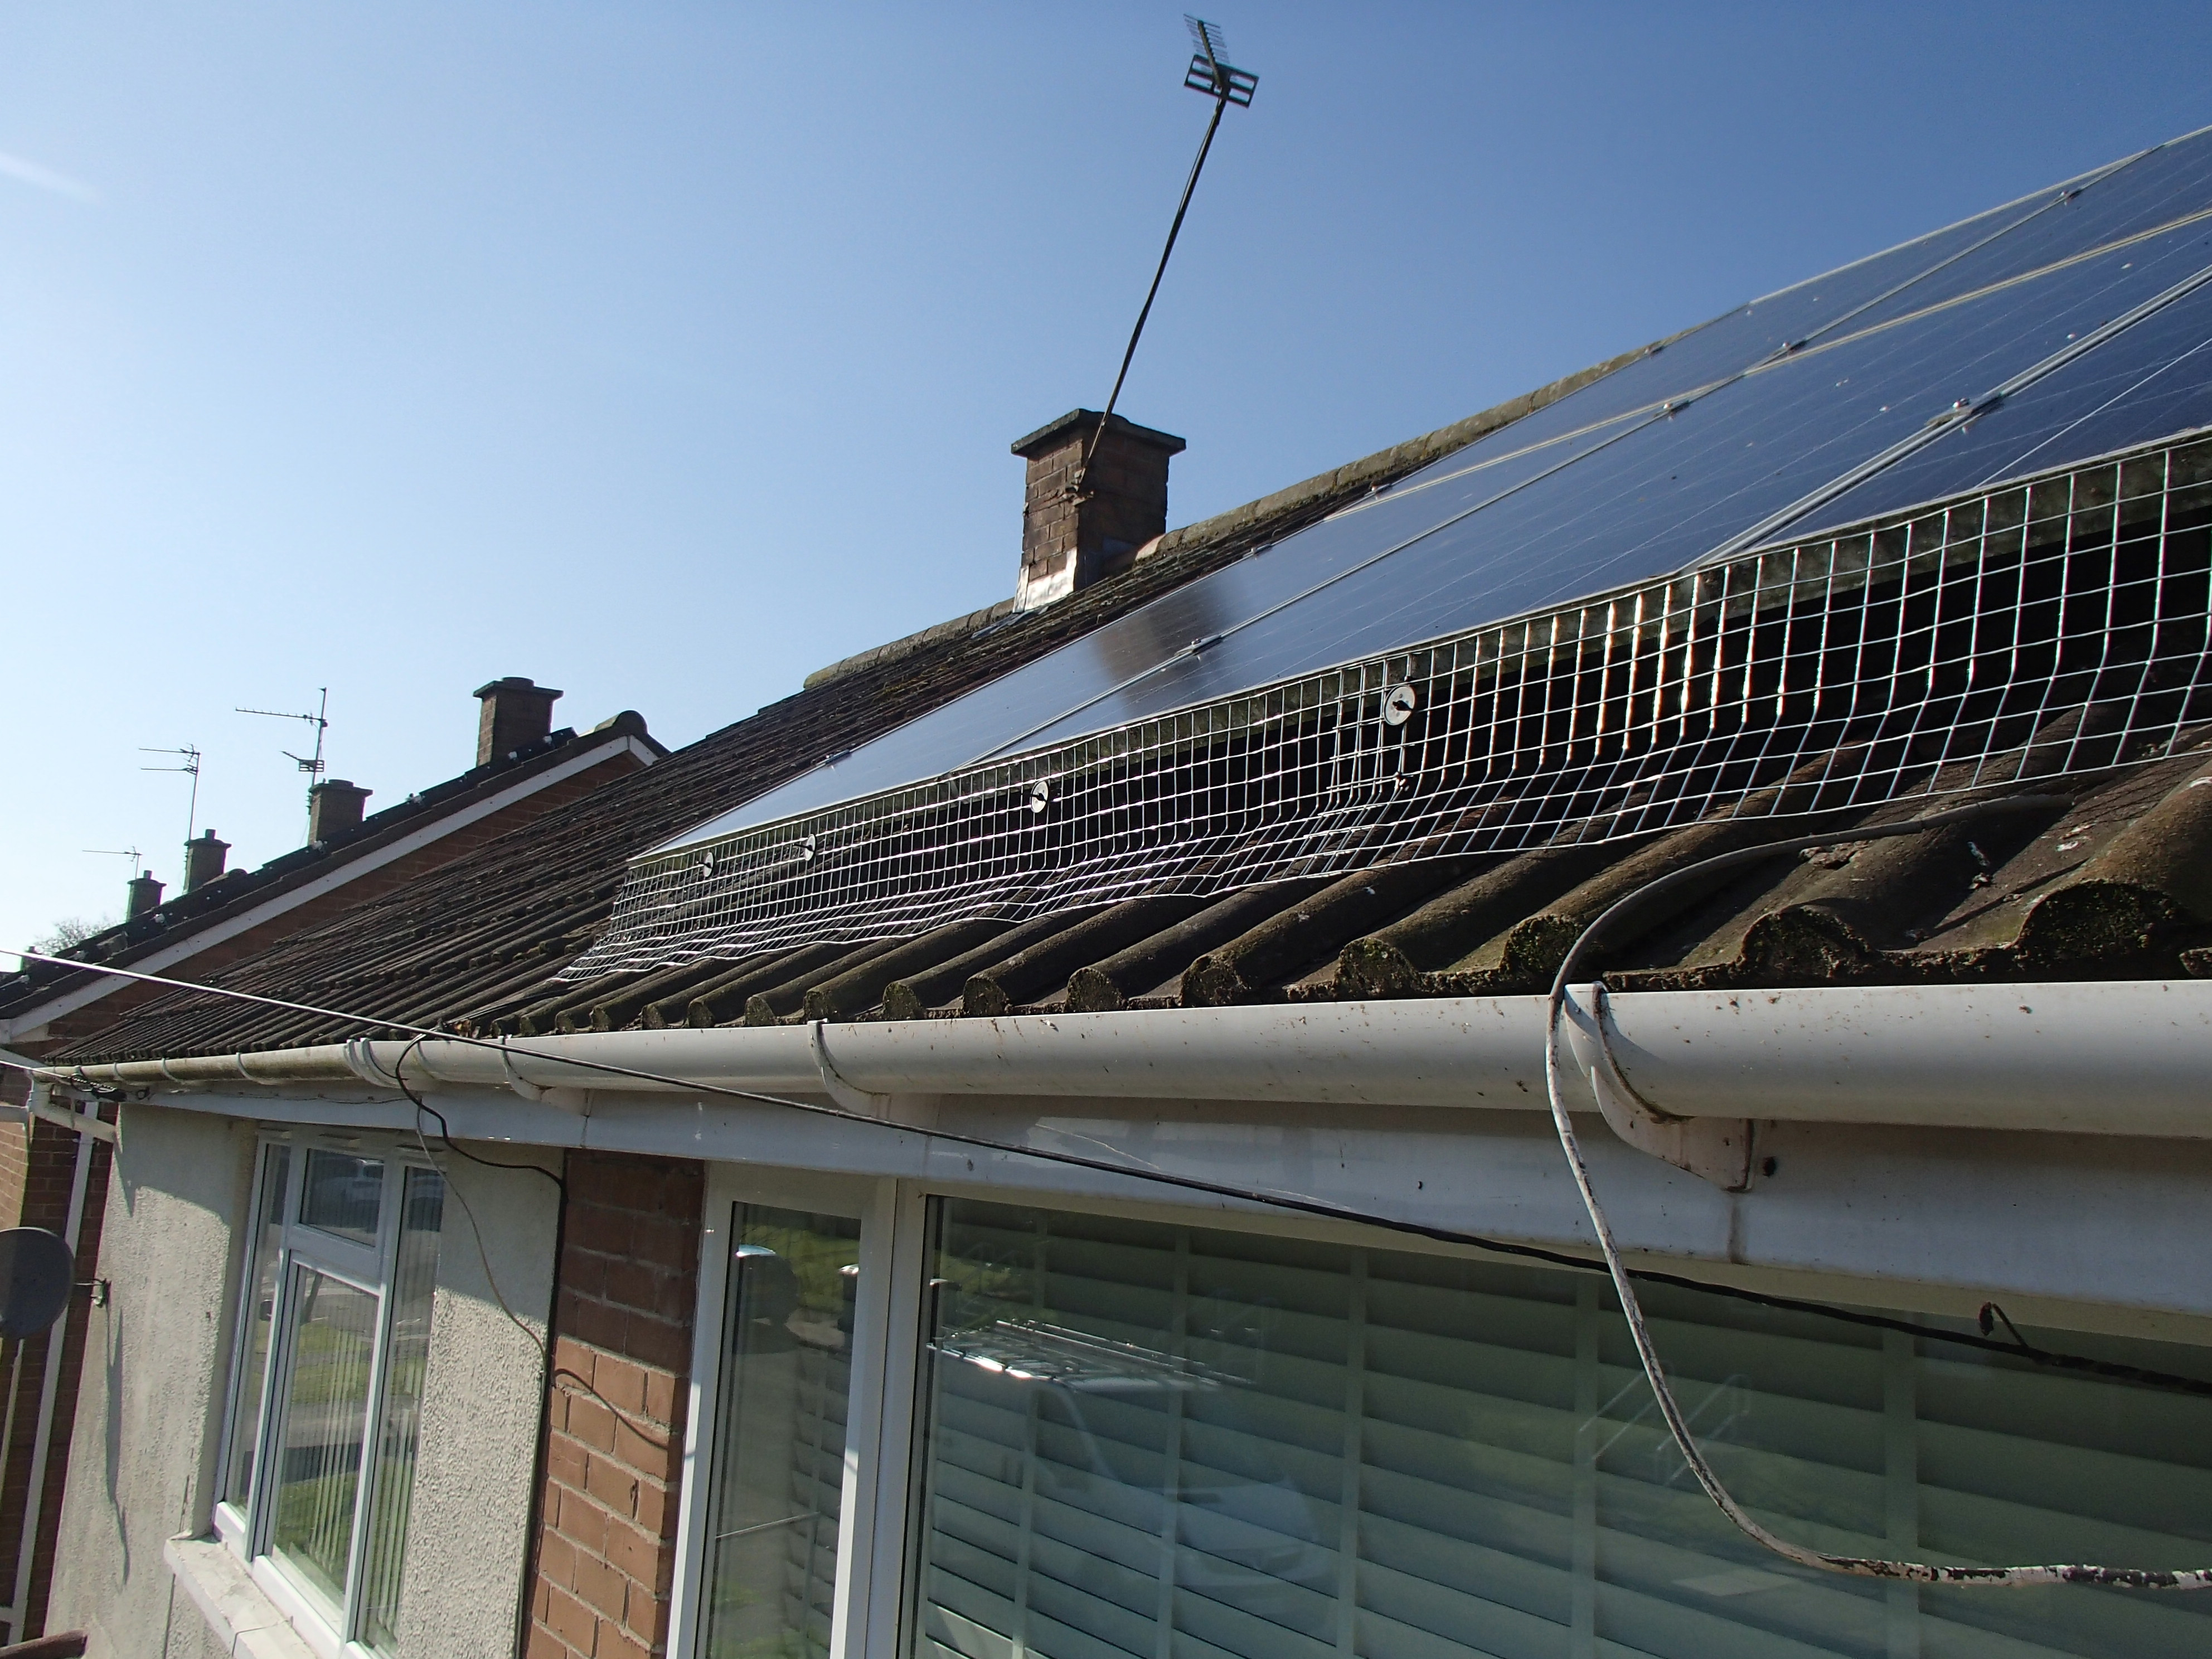 proofing solar panels from pigeons_4